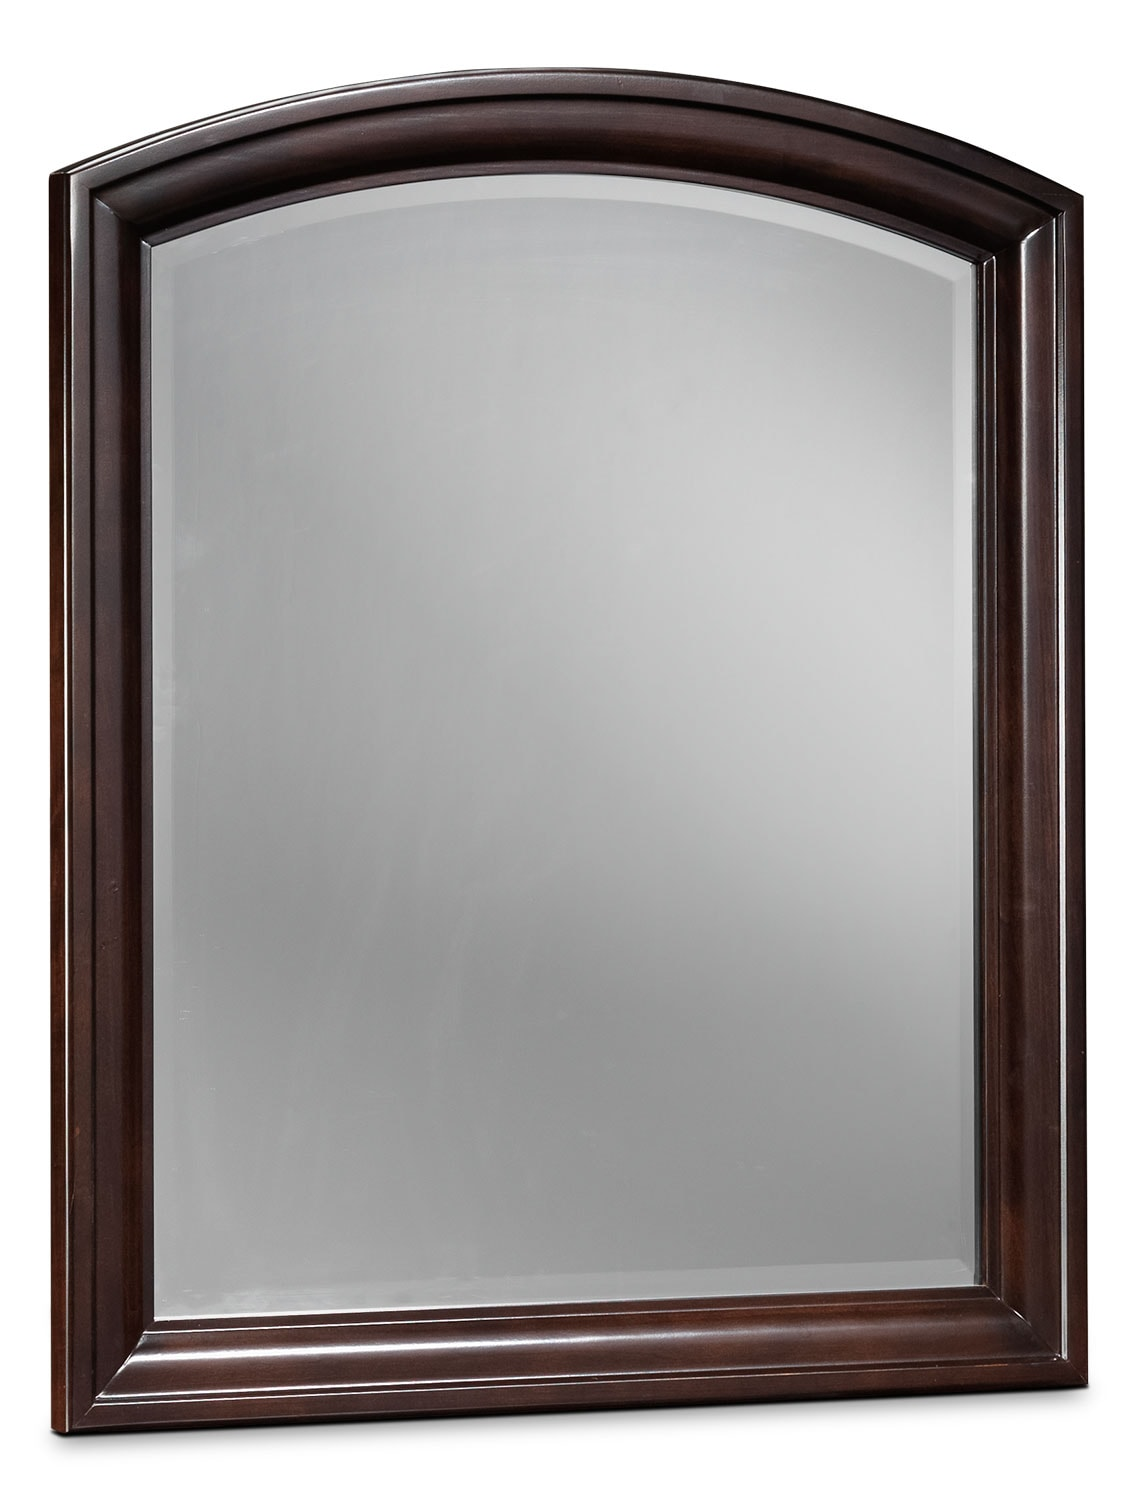 Kids Furniture - New Justin Mirror - Deep Cherry